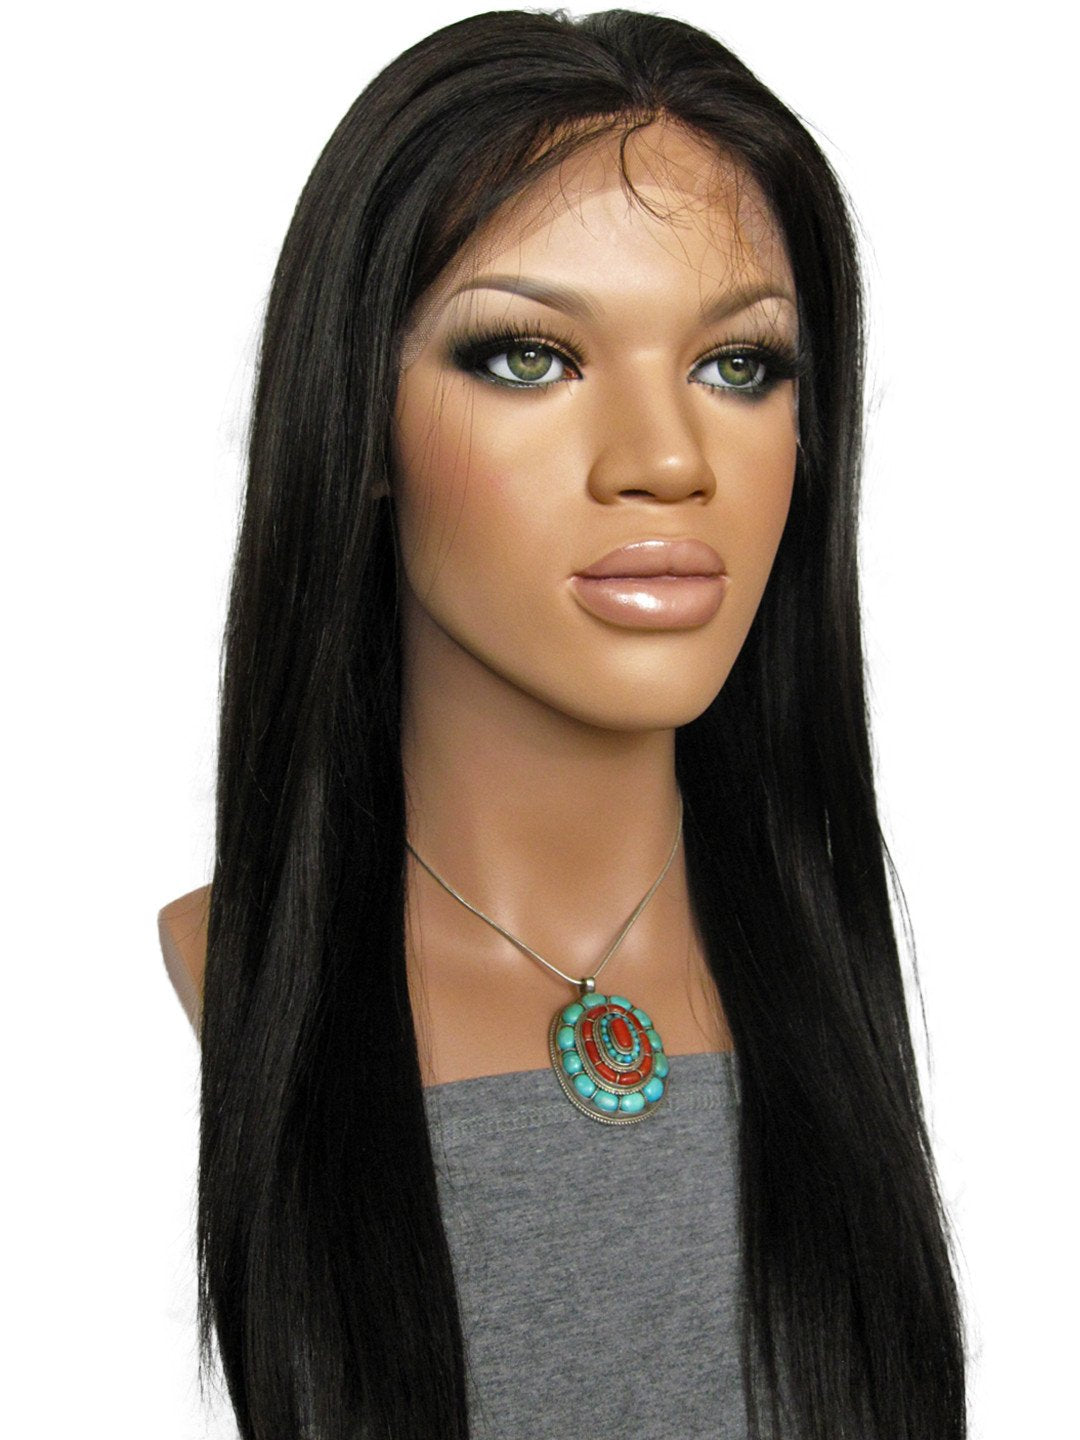 LACE FRONT WIG: Violette Light Yaki Indian Remy